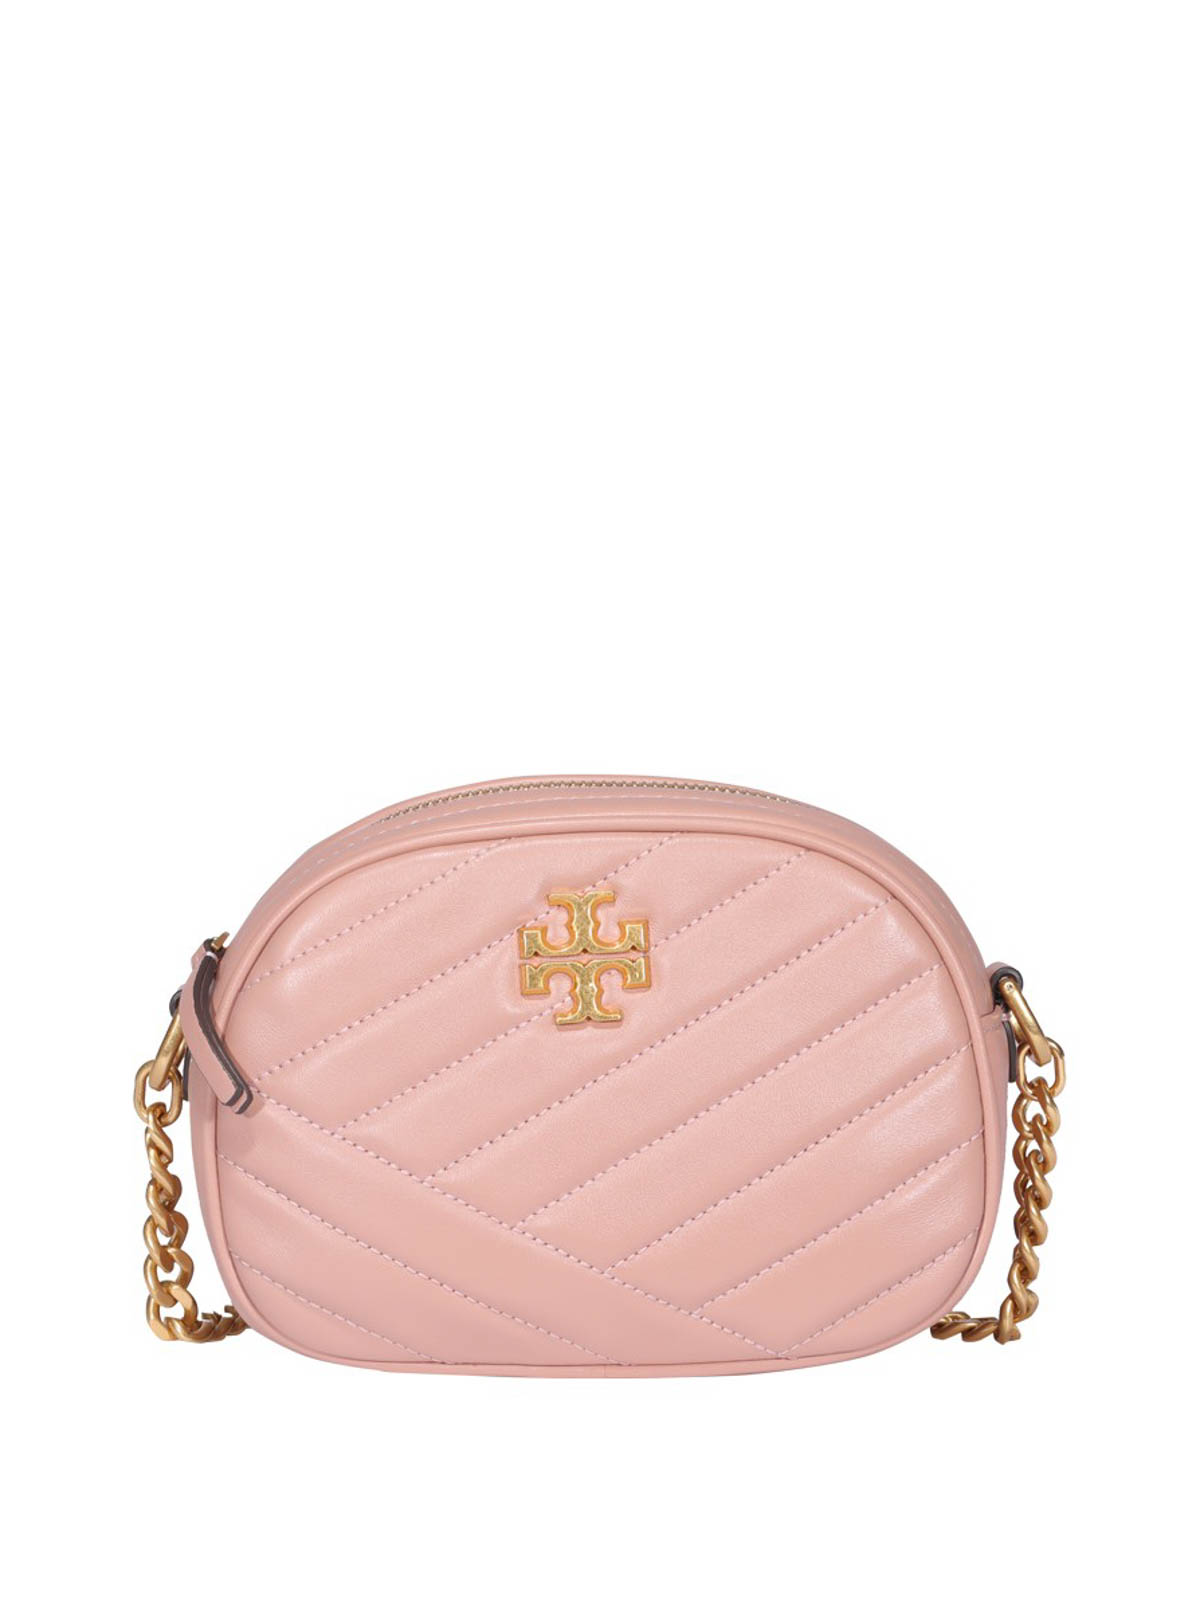 Tory Burch QUILTED LEATHER BAG